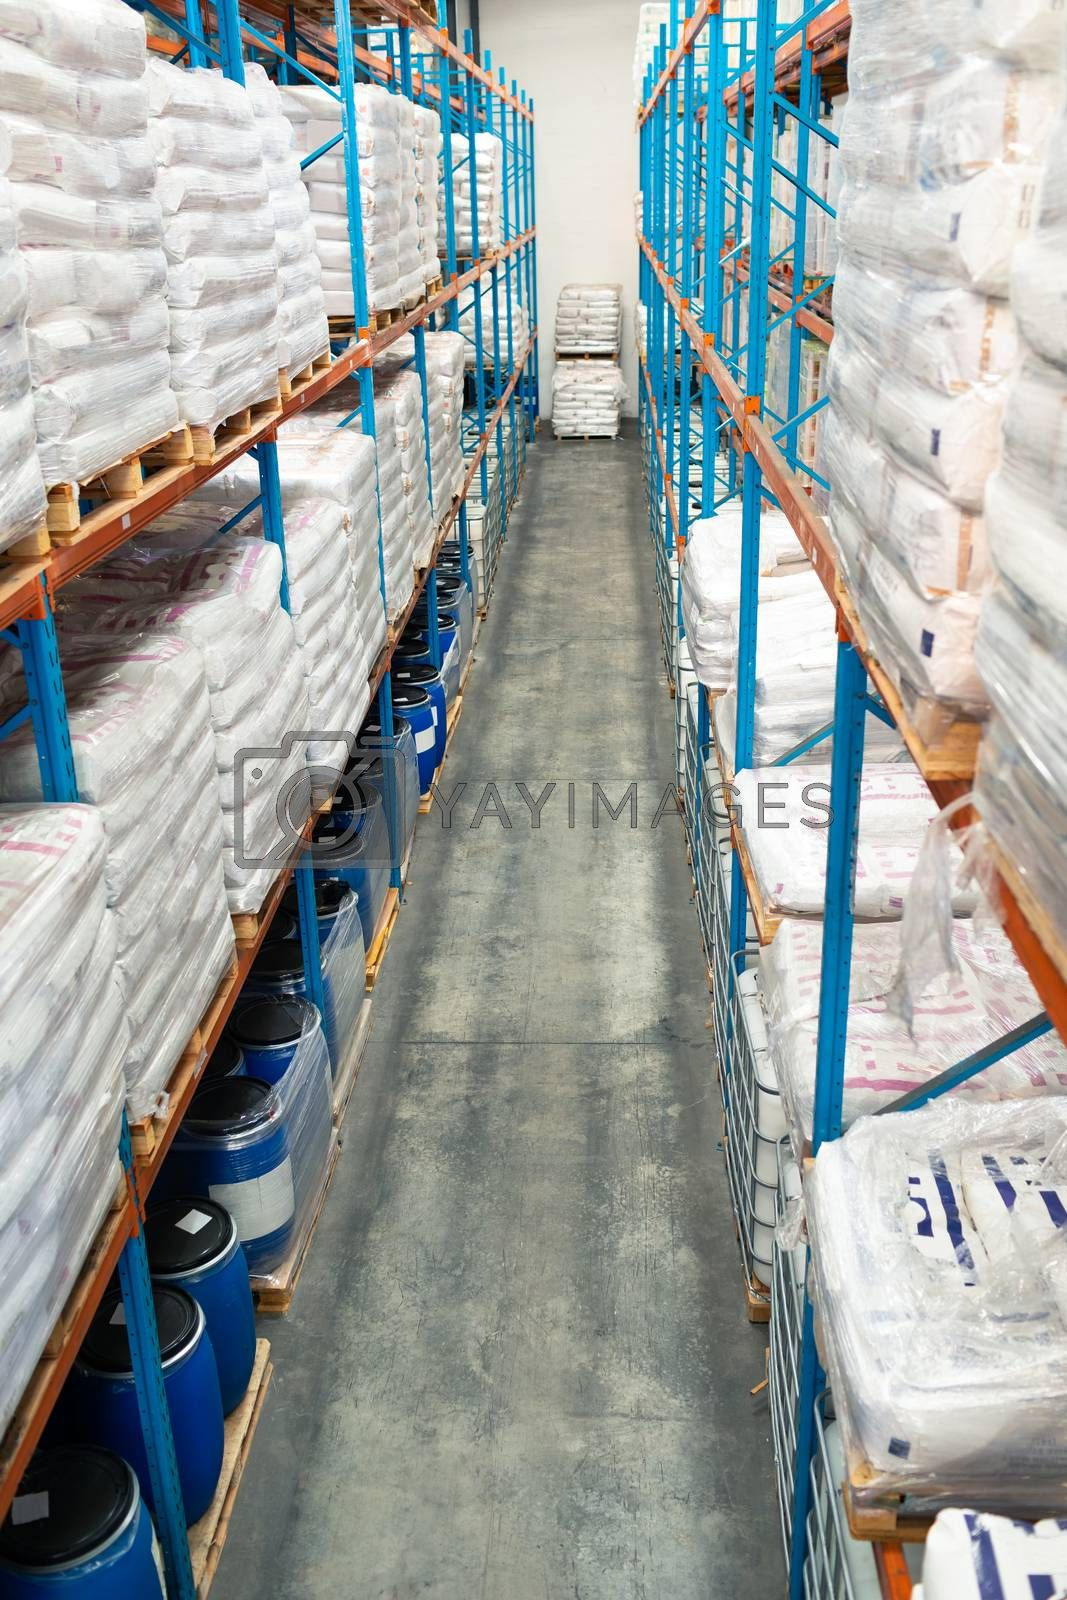 High angle view of barrel and goods arranged on a rack in warehouse. This is a freight transportation and distribution warehouse. Industrial and industrial workers concept